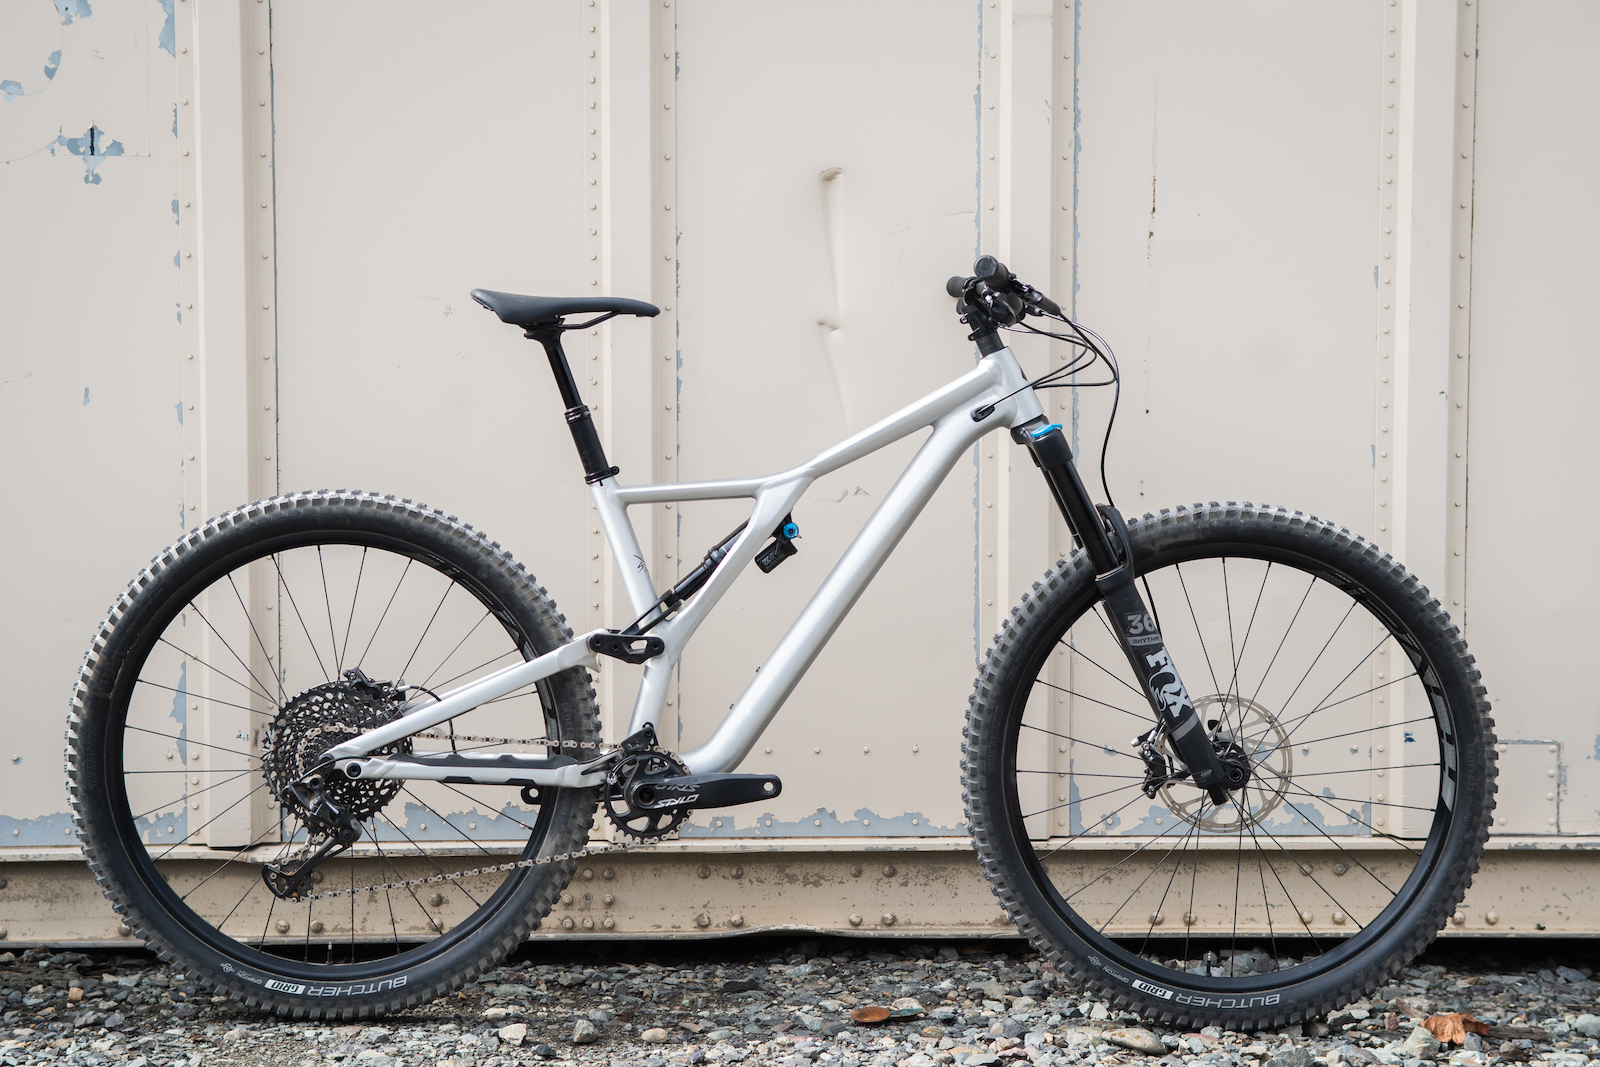 8a5975a4f03 Review: Specialized Stumpjumper EVO 29 - Pinkbike